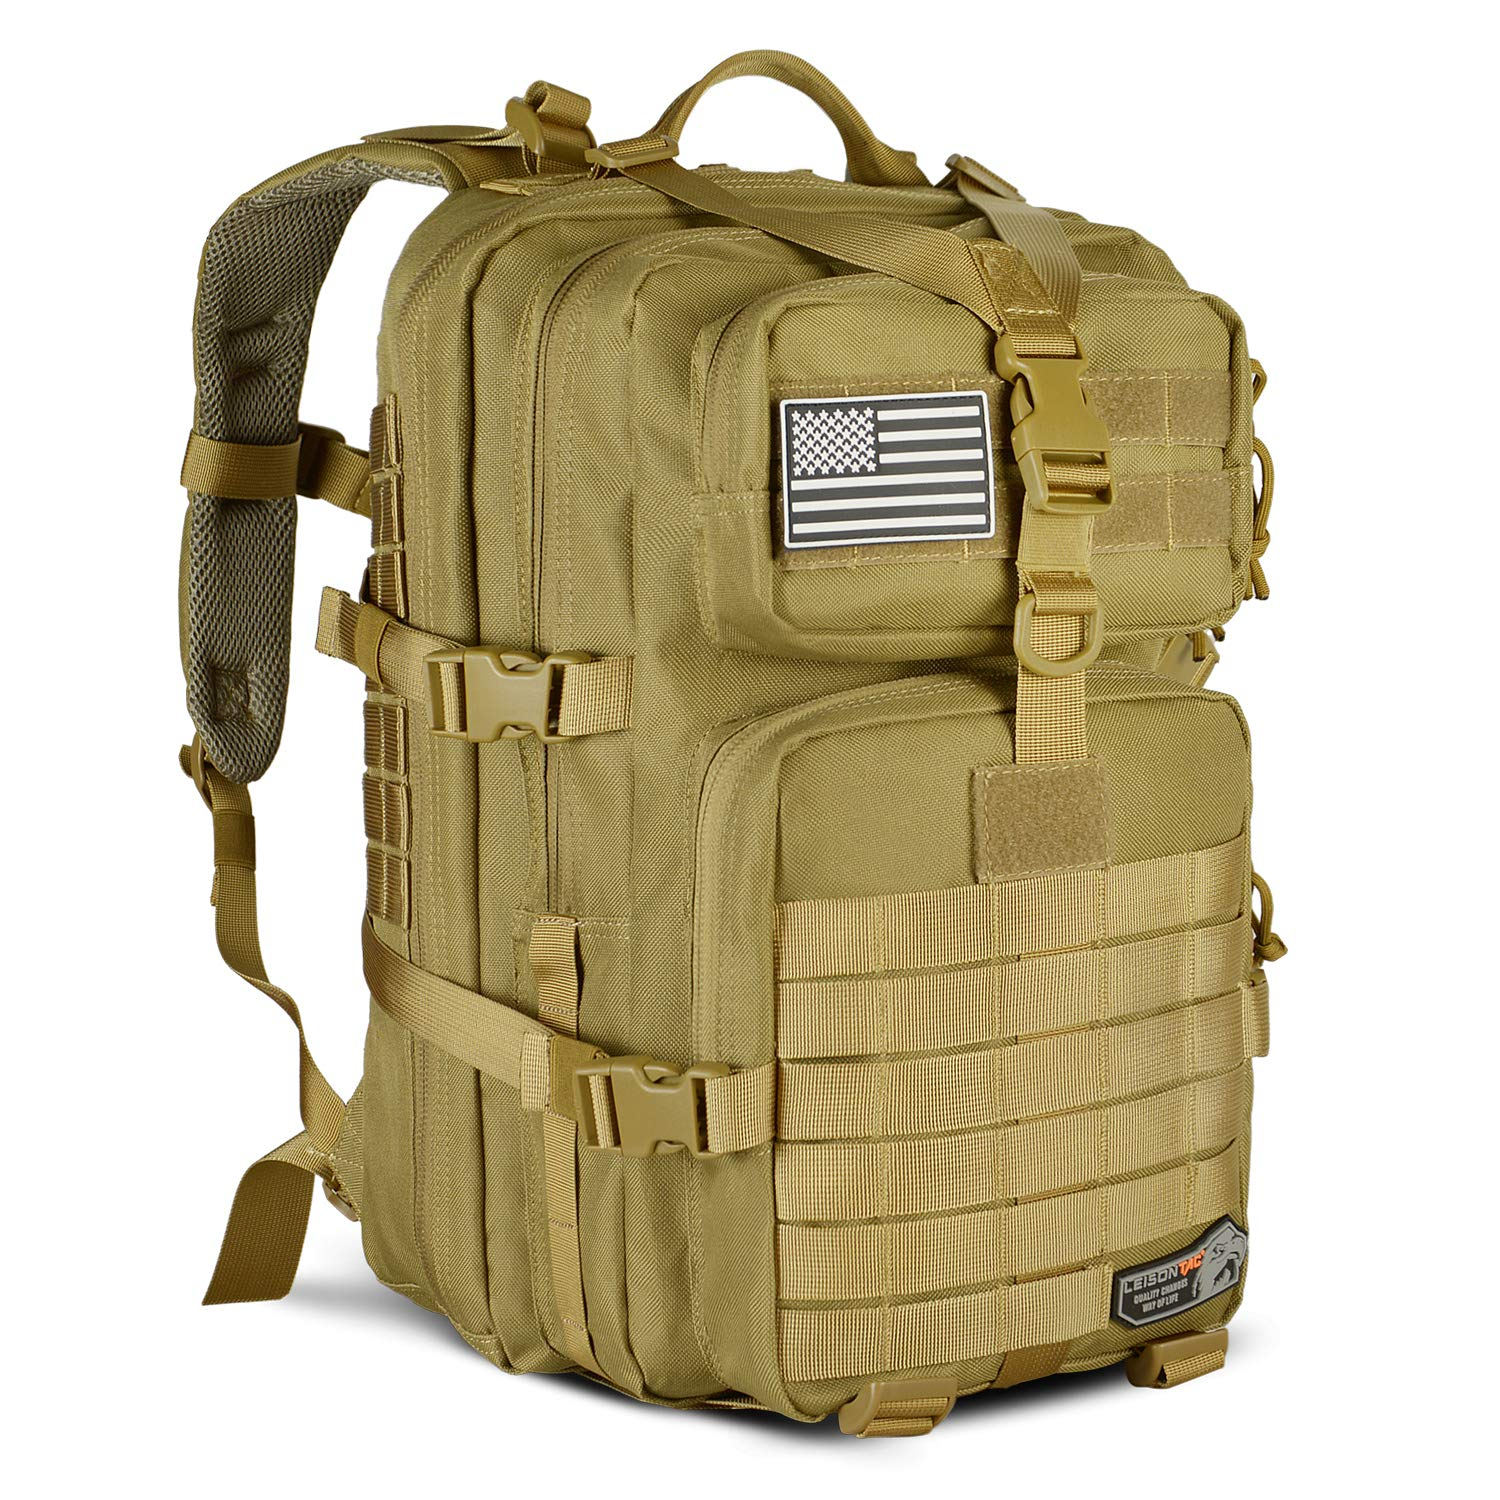 LeisonTac Tactical Back Pack Military ISO Standard for Hunting Hiking Travel & Camping   Heavy Duty Nylon Stitching Water Resistant Small Rucksack with Hydration Bladder Compartment (Coyote)